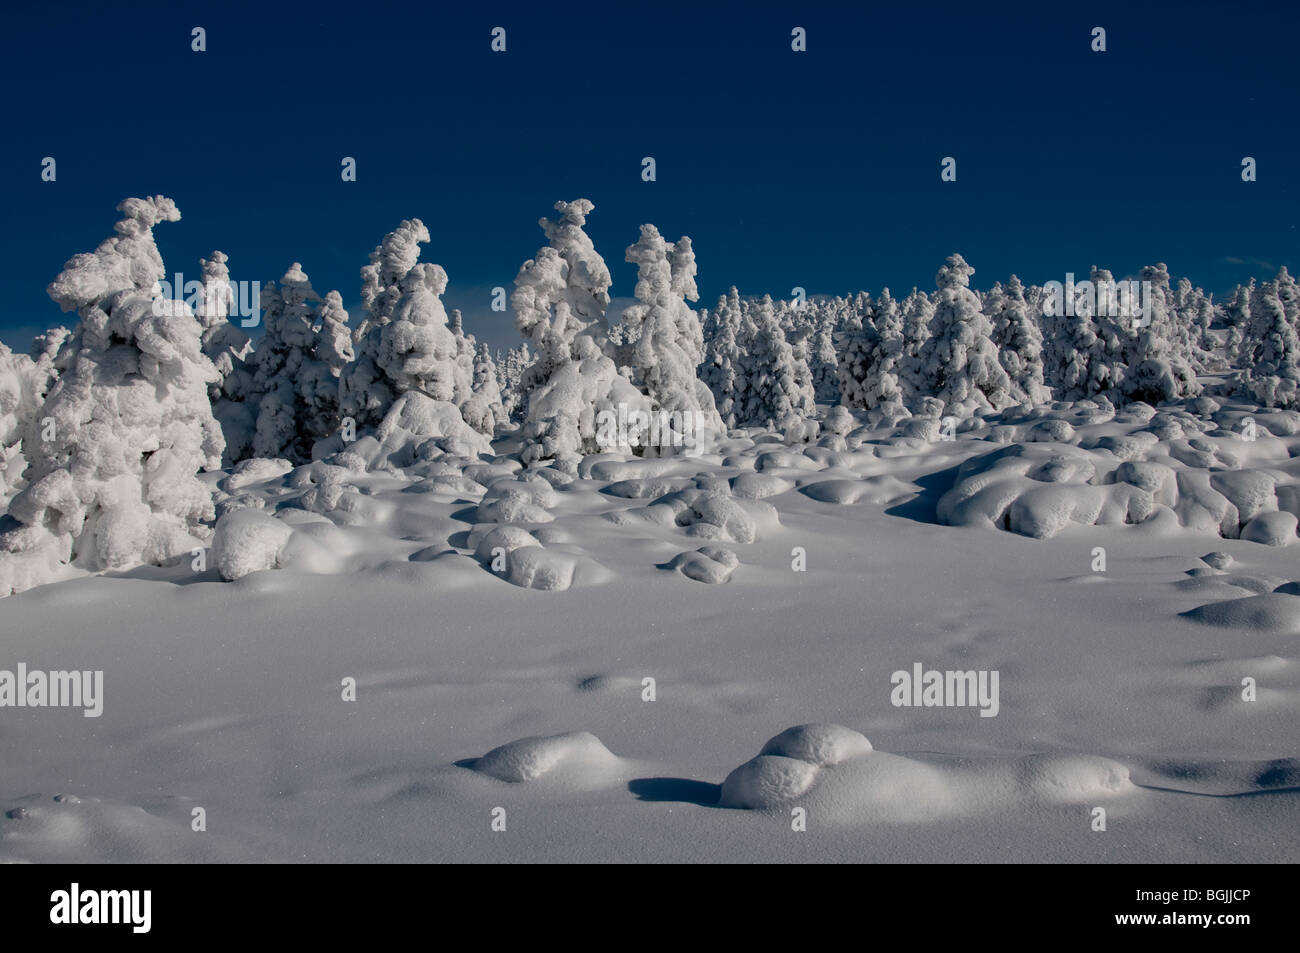 view of fir trees covered in snow at the summit of the Cerna Hora, Karkonosze, Czech Republic. - Stock Image